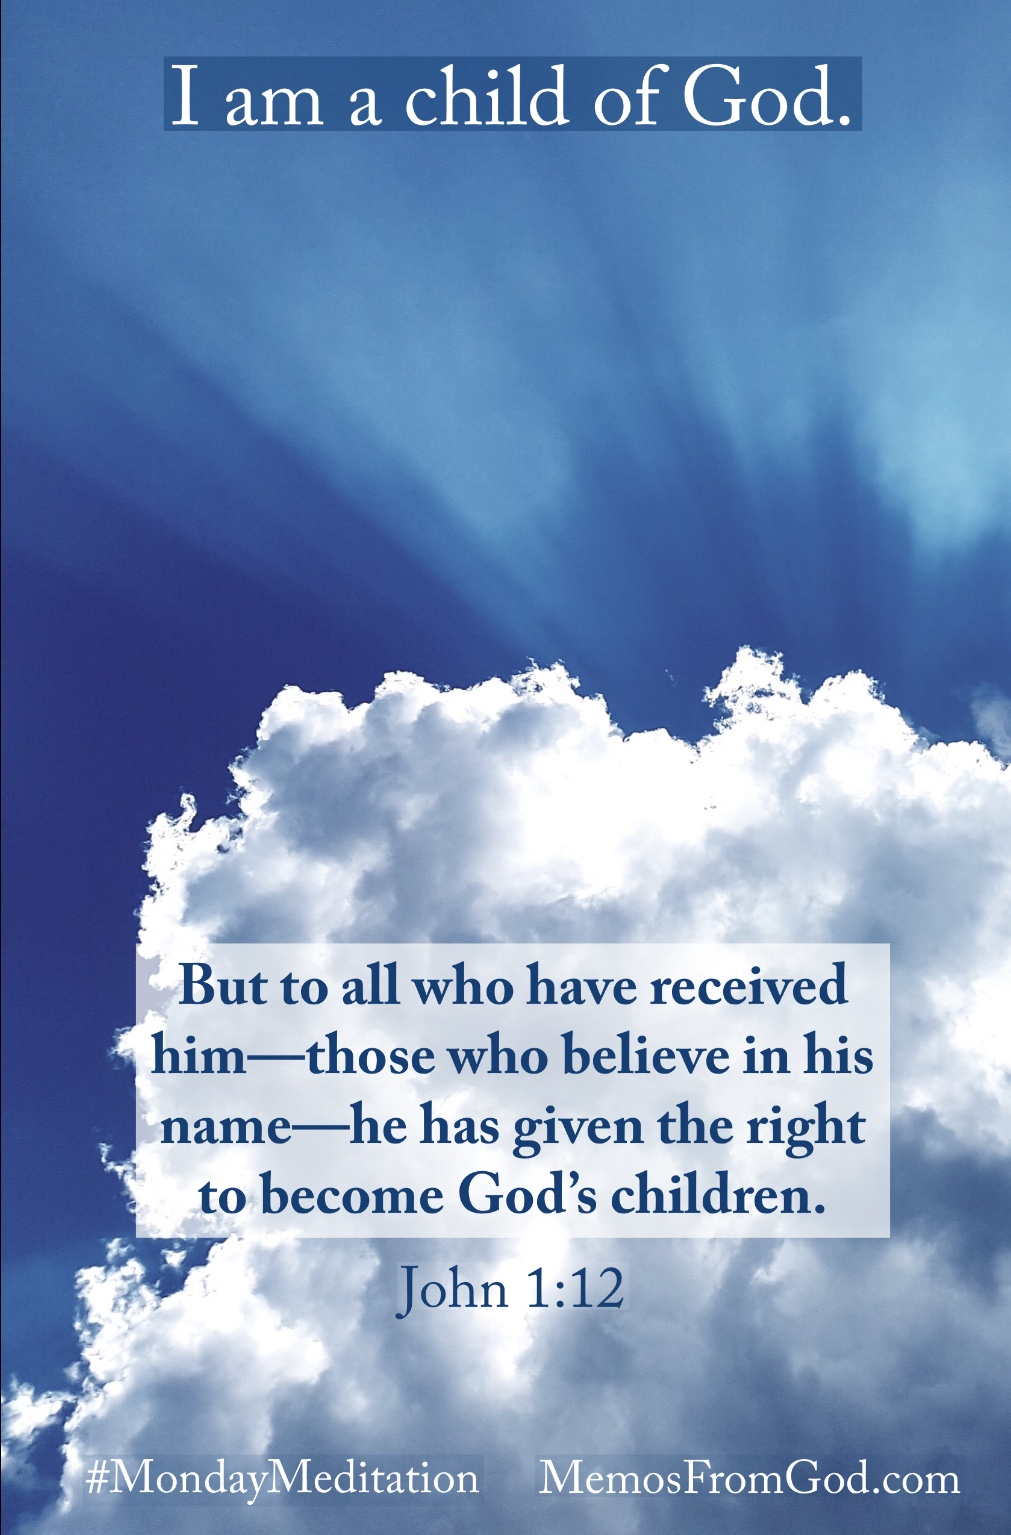 Rays of sunlight shining up from behind a fluffy grey and white cloud. Caption: But to all who have received him—those who believe in his name—he has given the right to become God's children. John 1:12